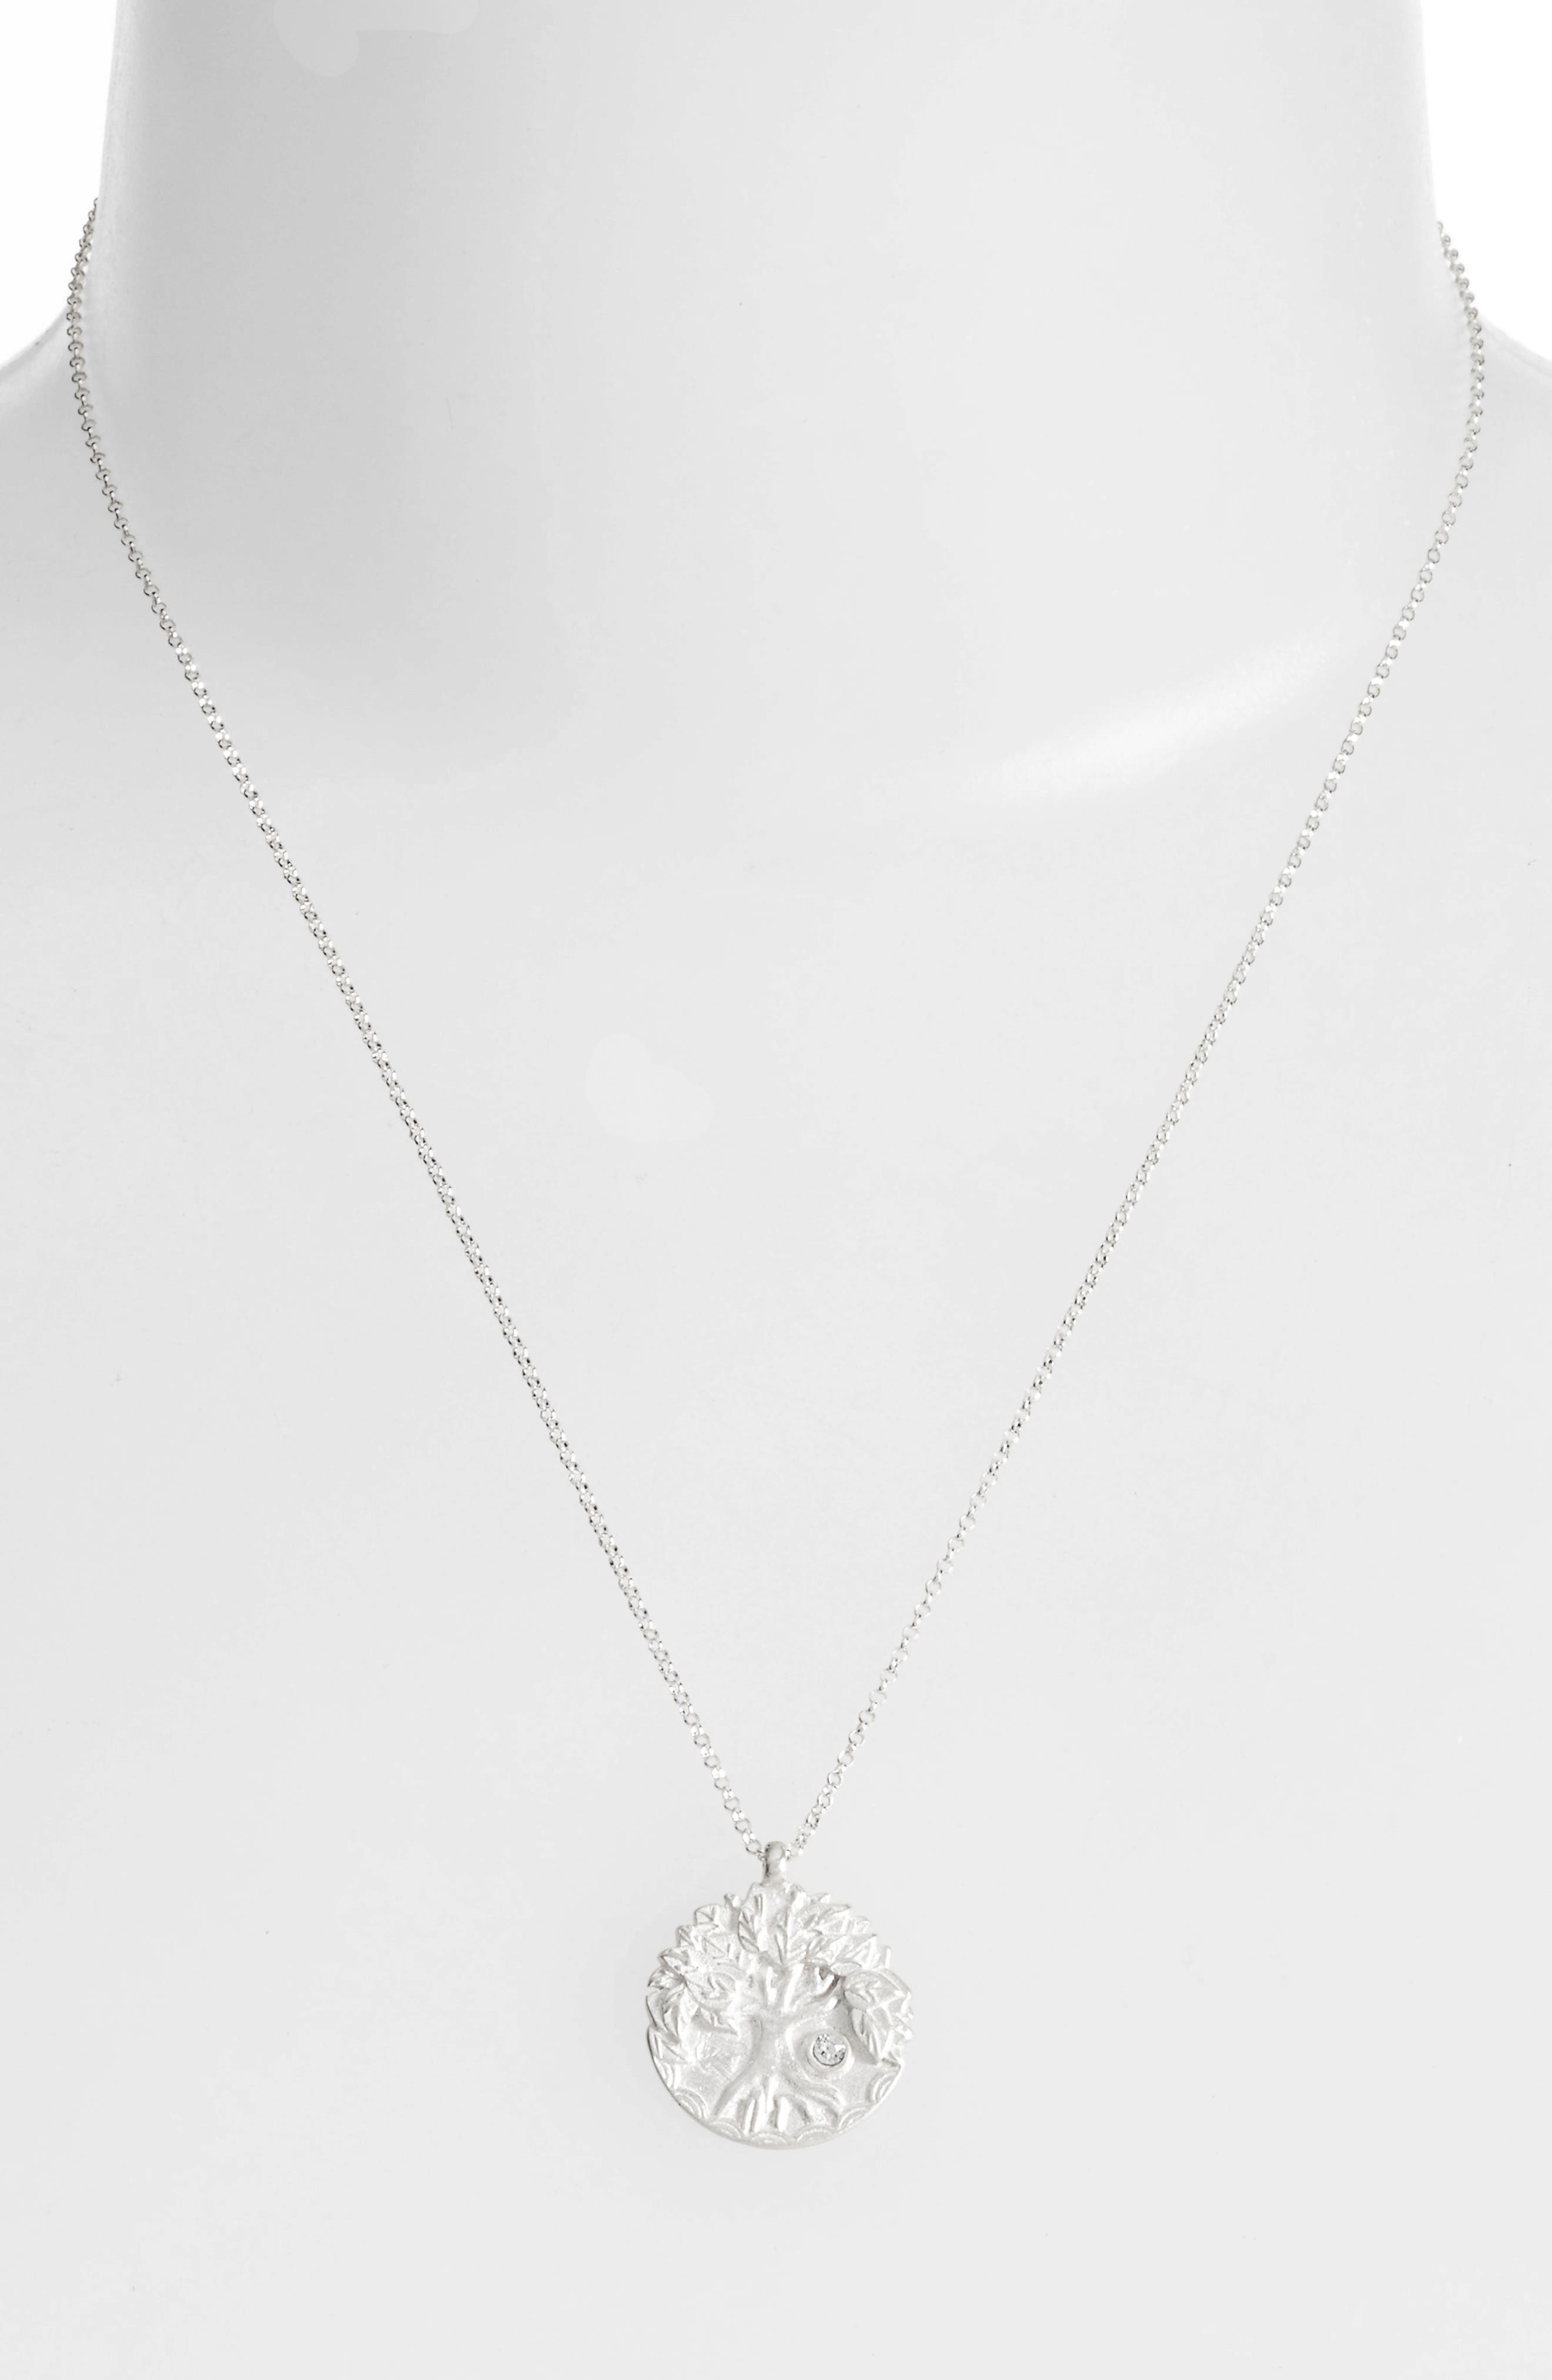 The Legacy Collection - Lift Up Your Eyes Upon... Pendant Necklace,                             Alternate thumbnail 2, color,                             Silver